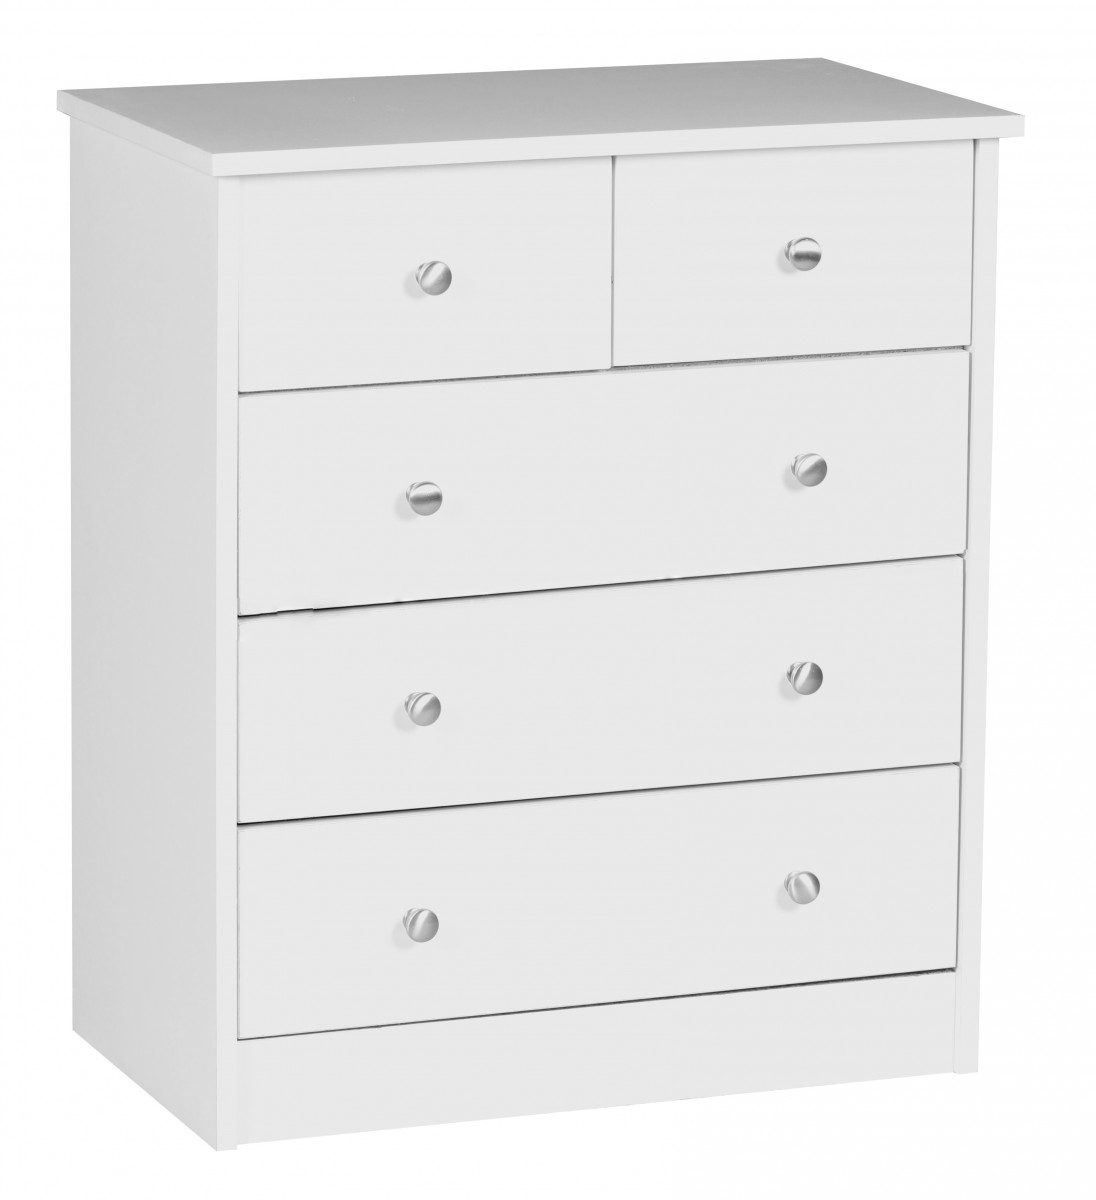 wohnling blanc commode 60 x 70 x 35 cm buffet 5 tiroirs armoire buffet neuf ebay. Black Bedroom Furniture Sets. Home Design Ideas